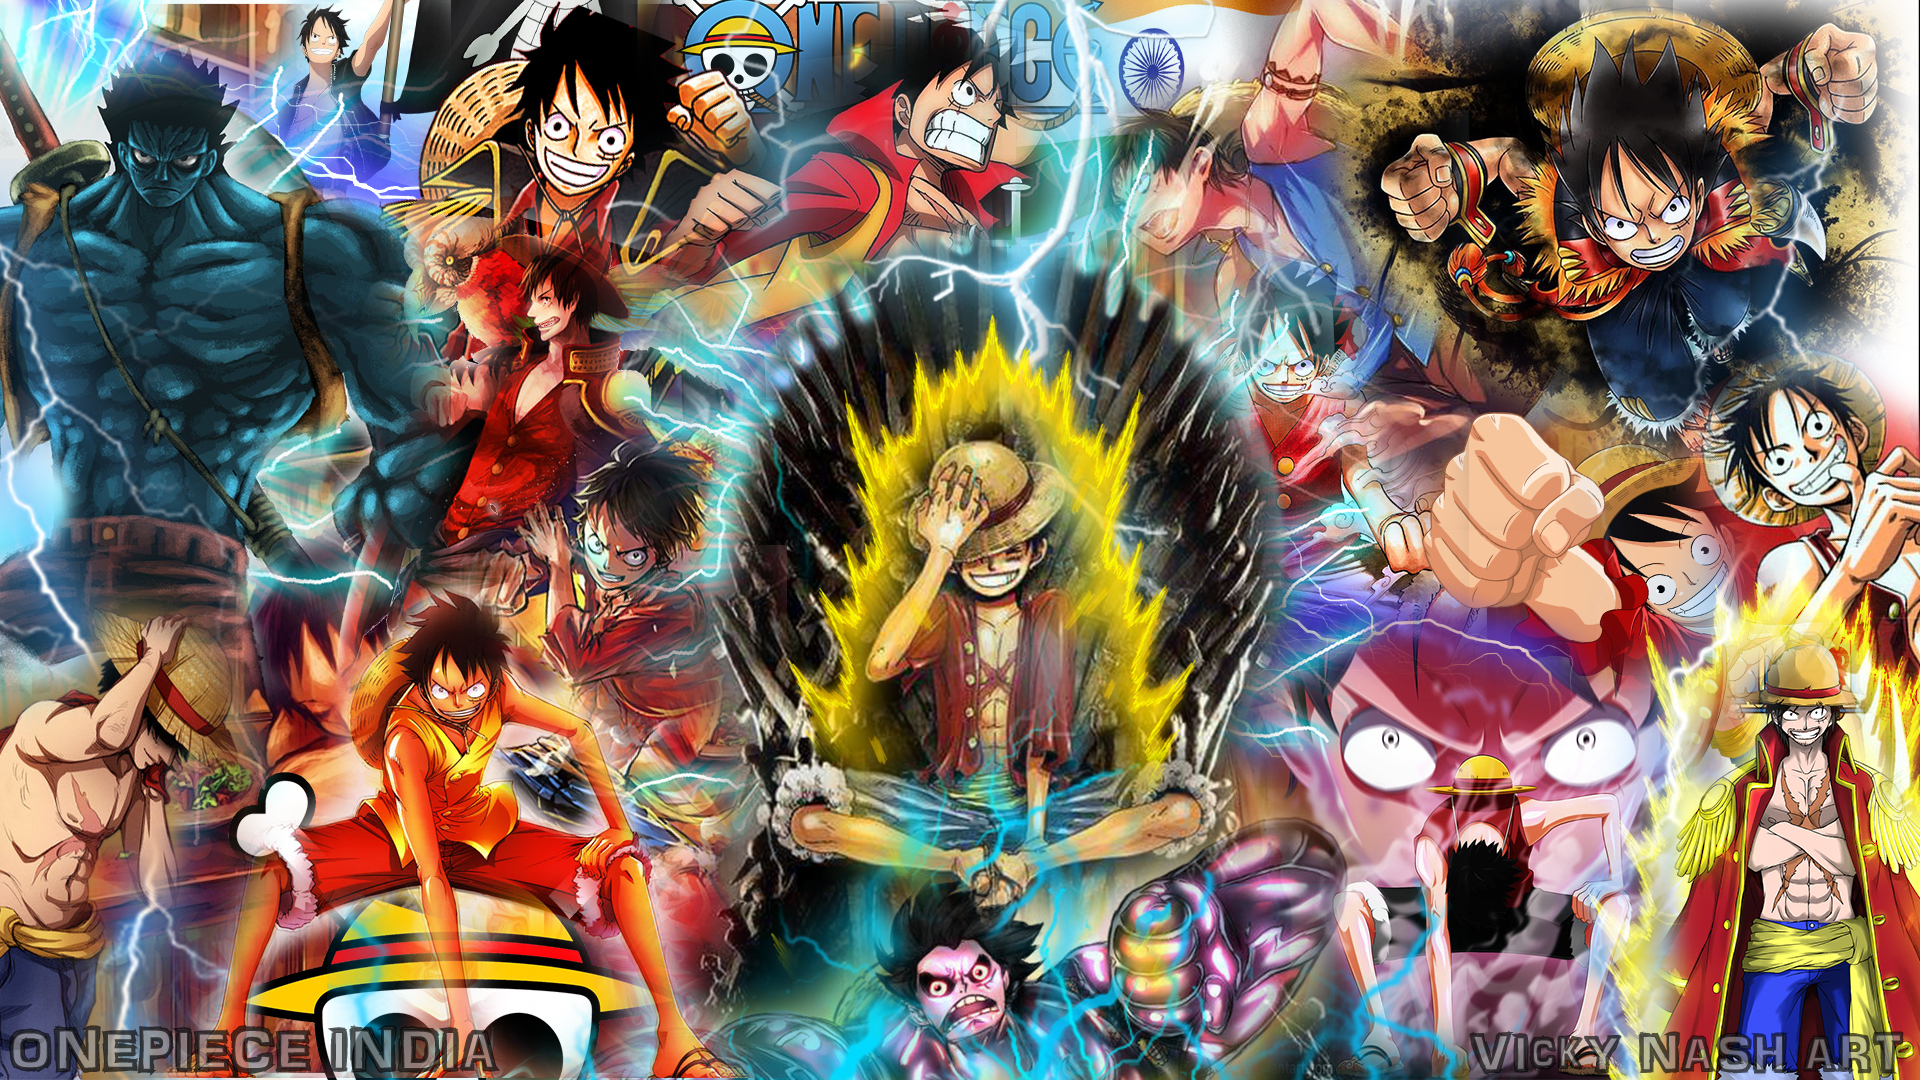 Wallpaper Iphone Hd Keren One Piece Luffy On Iron Throne Full Hd Wallpaper And